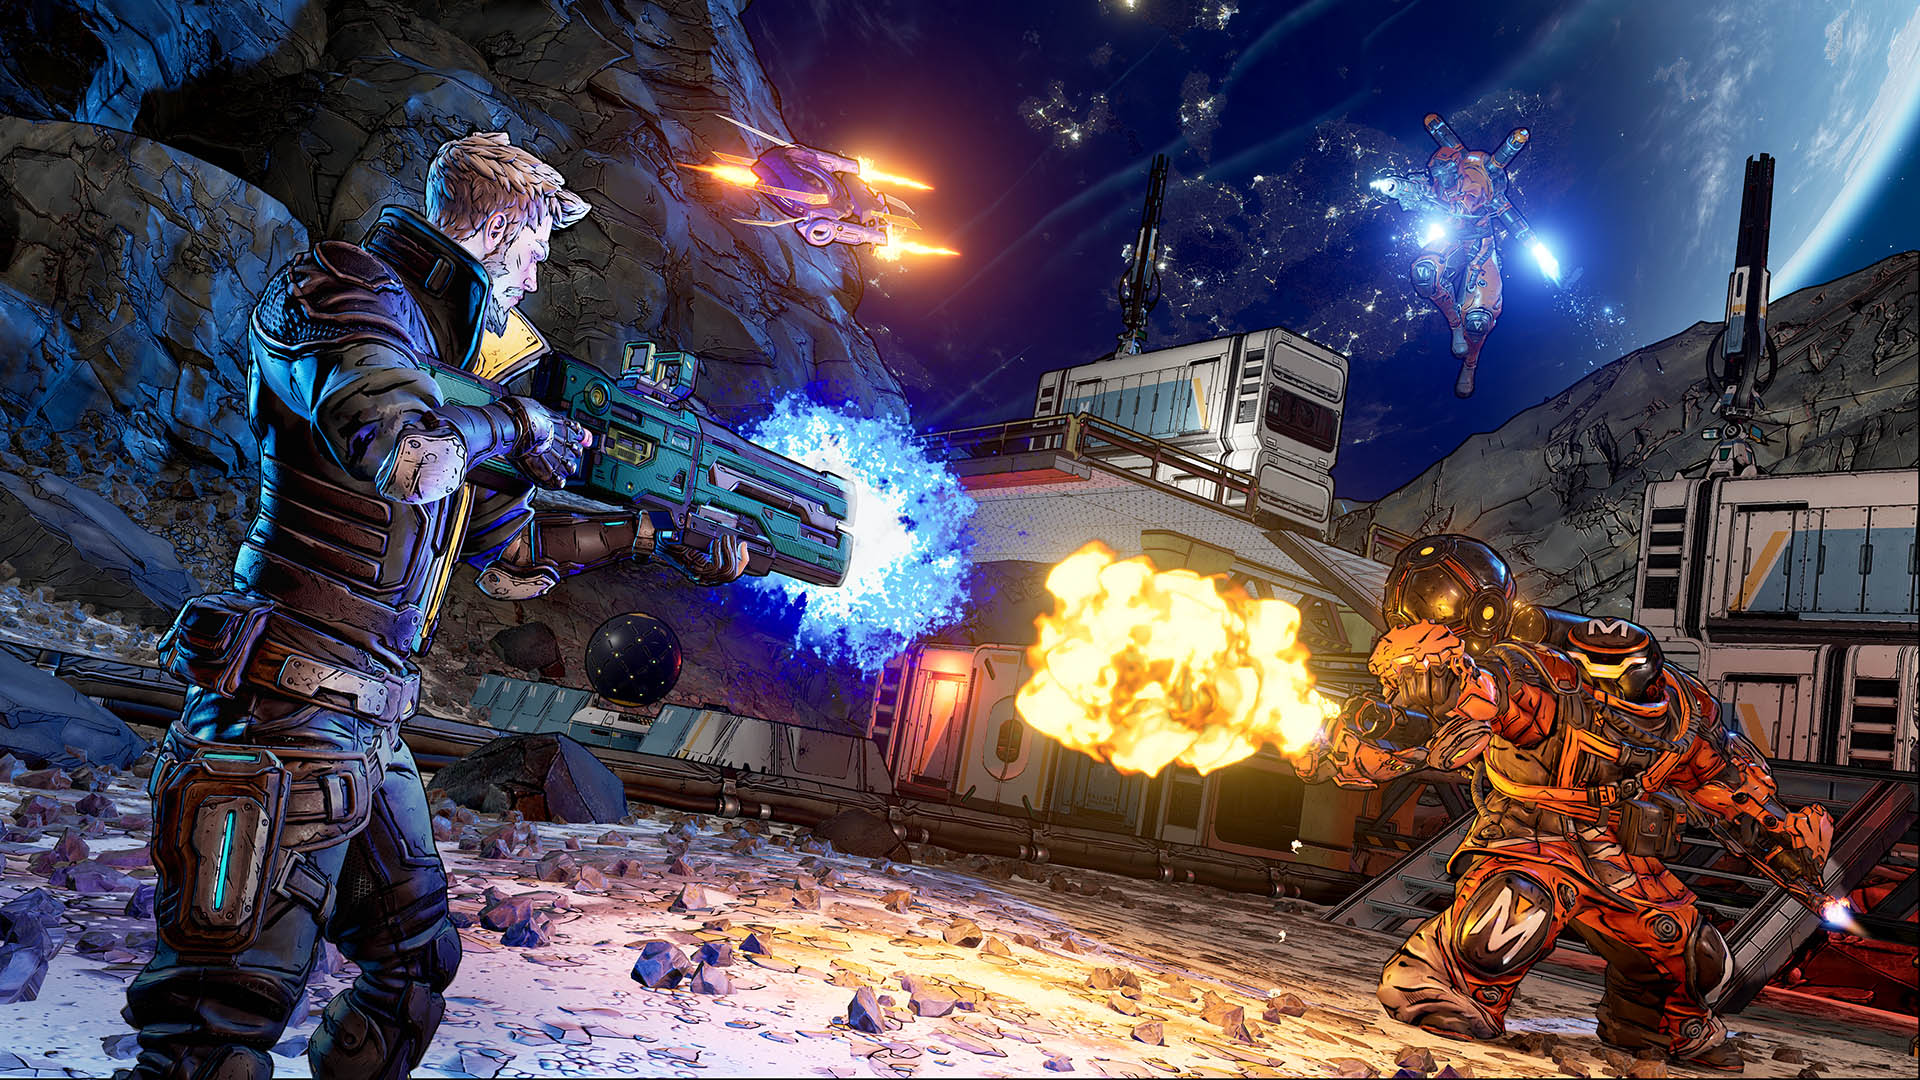 Borderlands 3 review roundup - all the scores (from 2K-approved outlets)